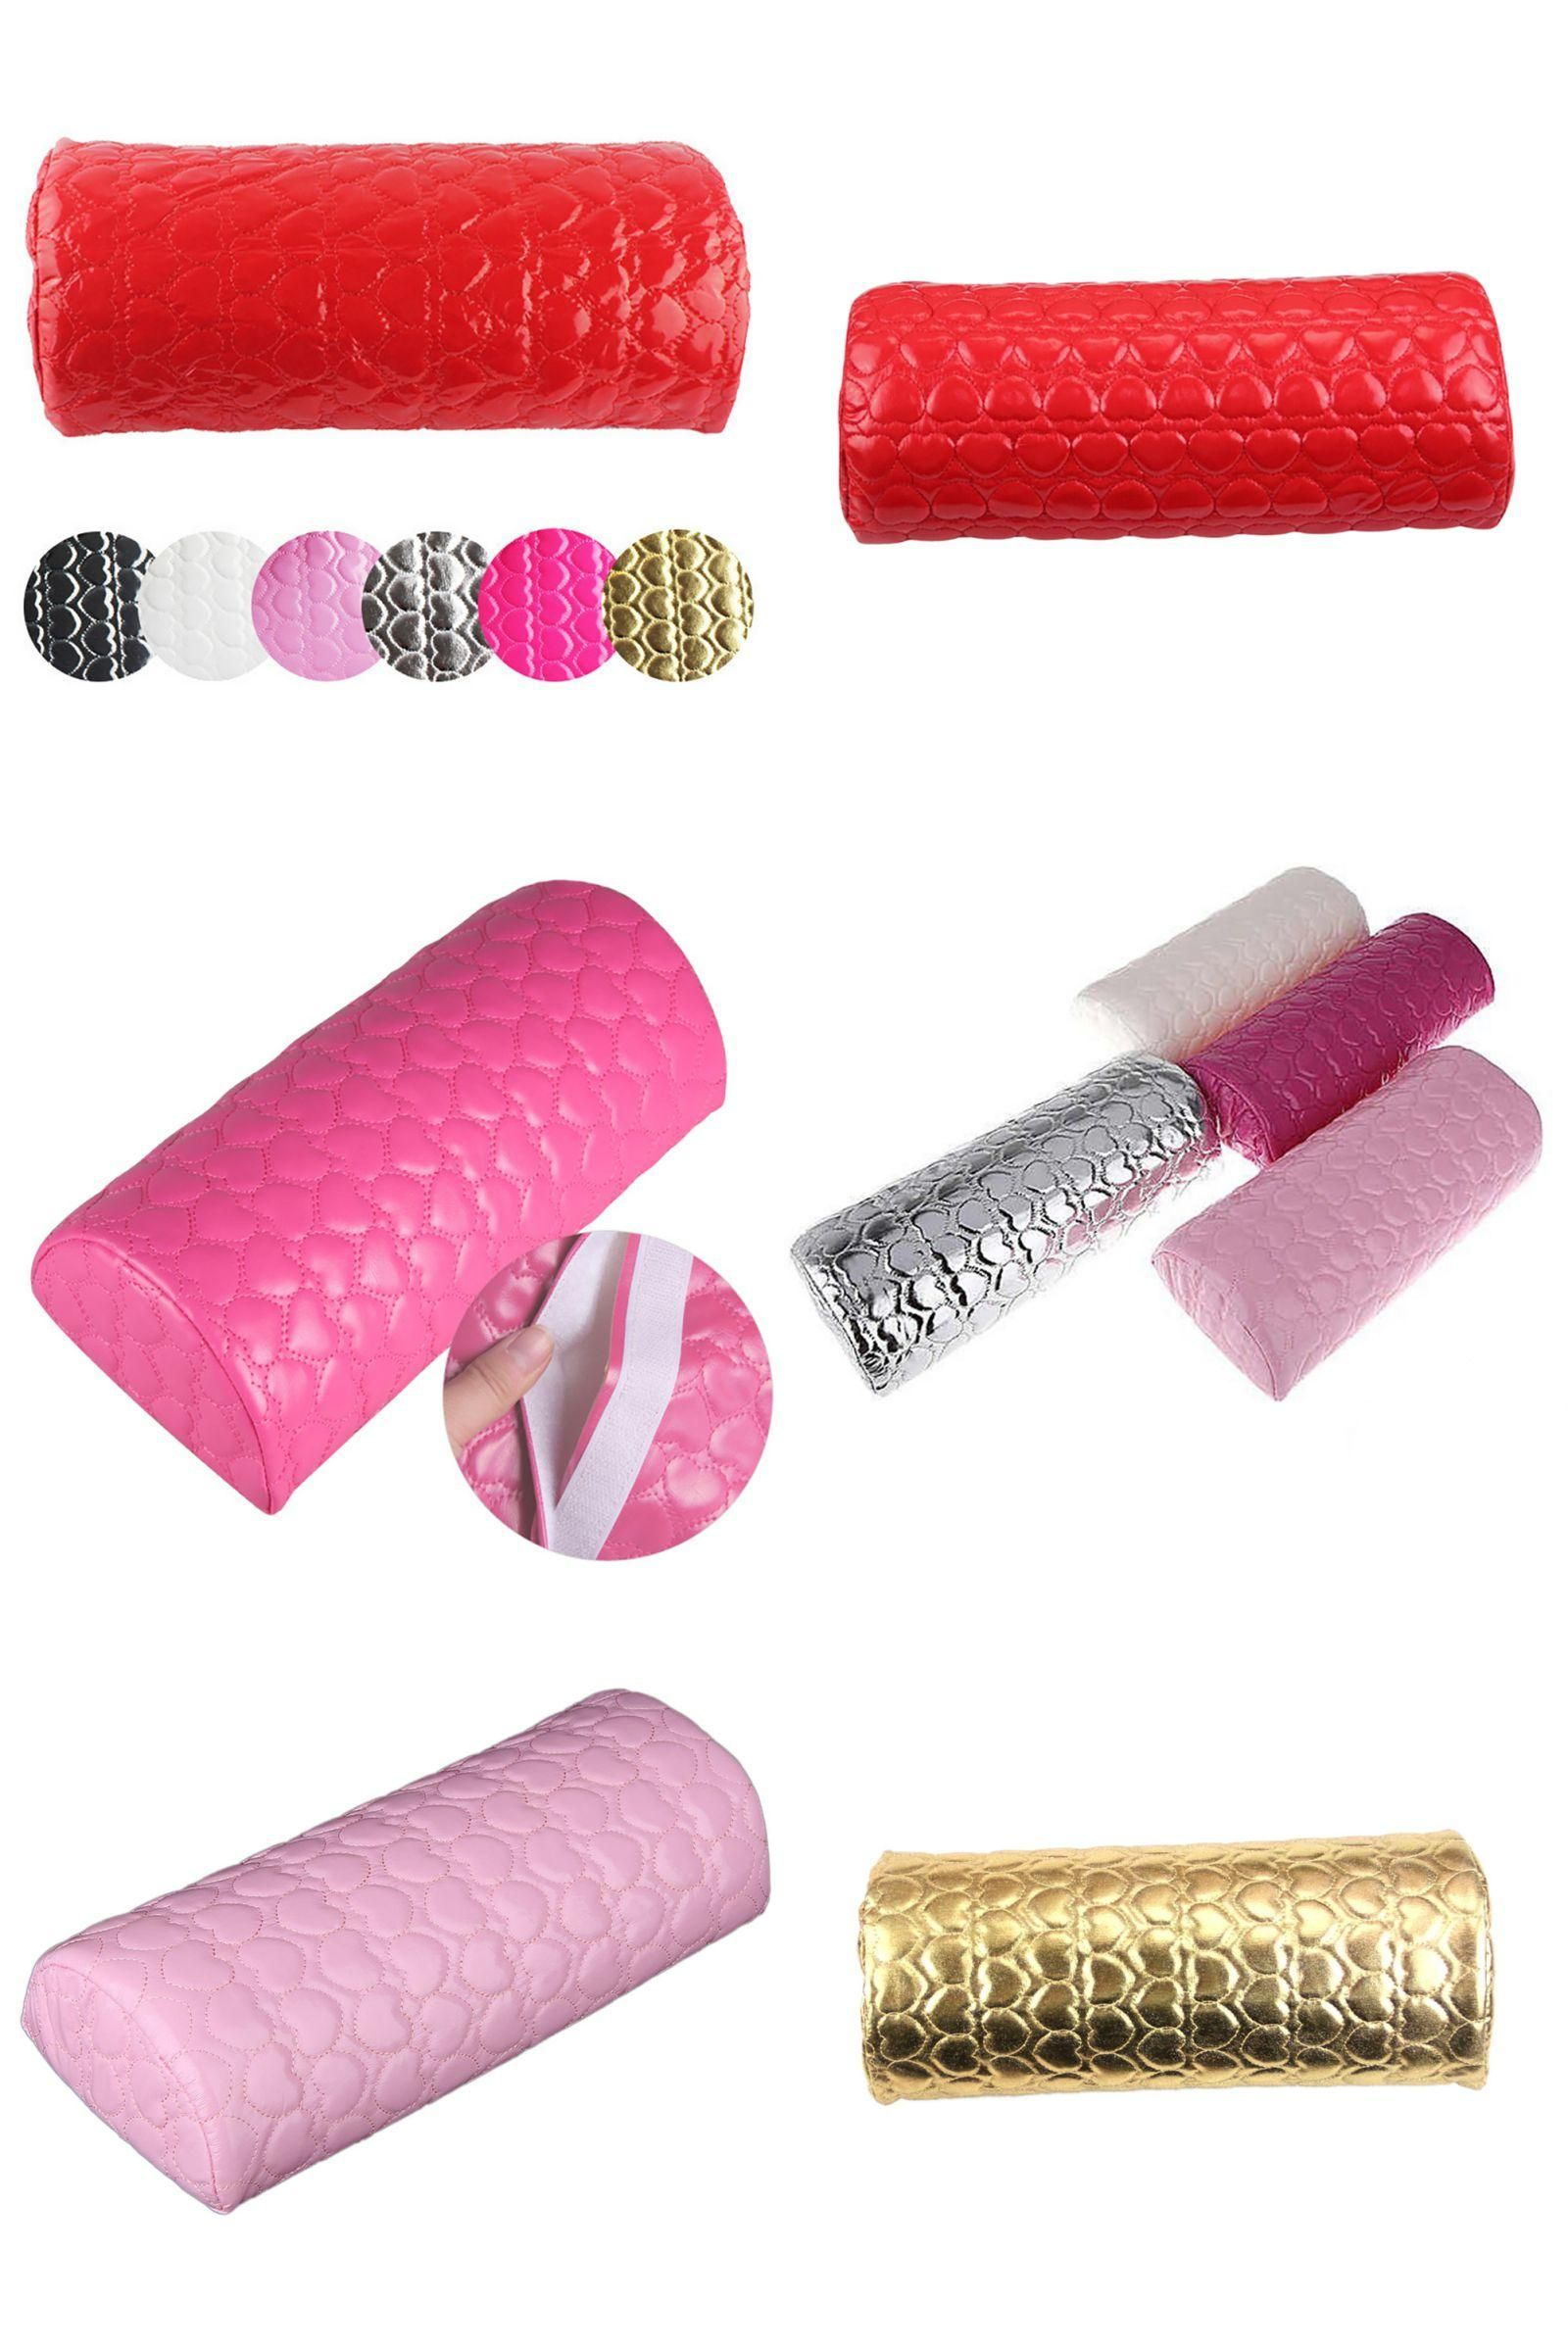 Visit To Buy Hot Nail Art Pillow For Manicure Hand Arm Rest Pillow Cushion Pu Leather Holder Soft Manicure Nail Tool Equi Pillow Art Nail Manicure Nail Tools